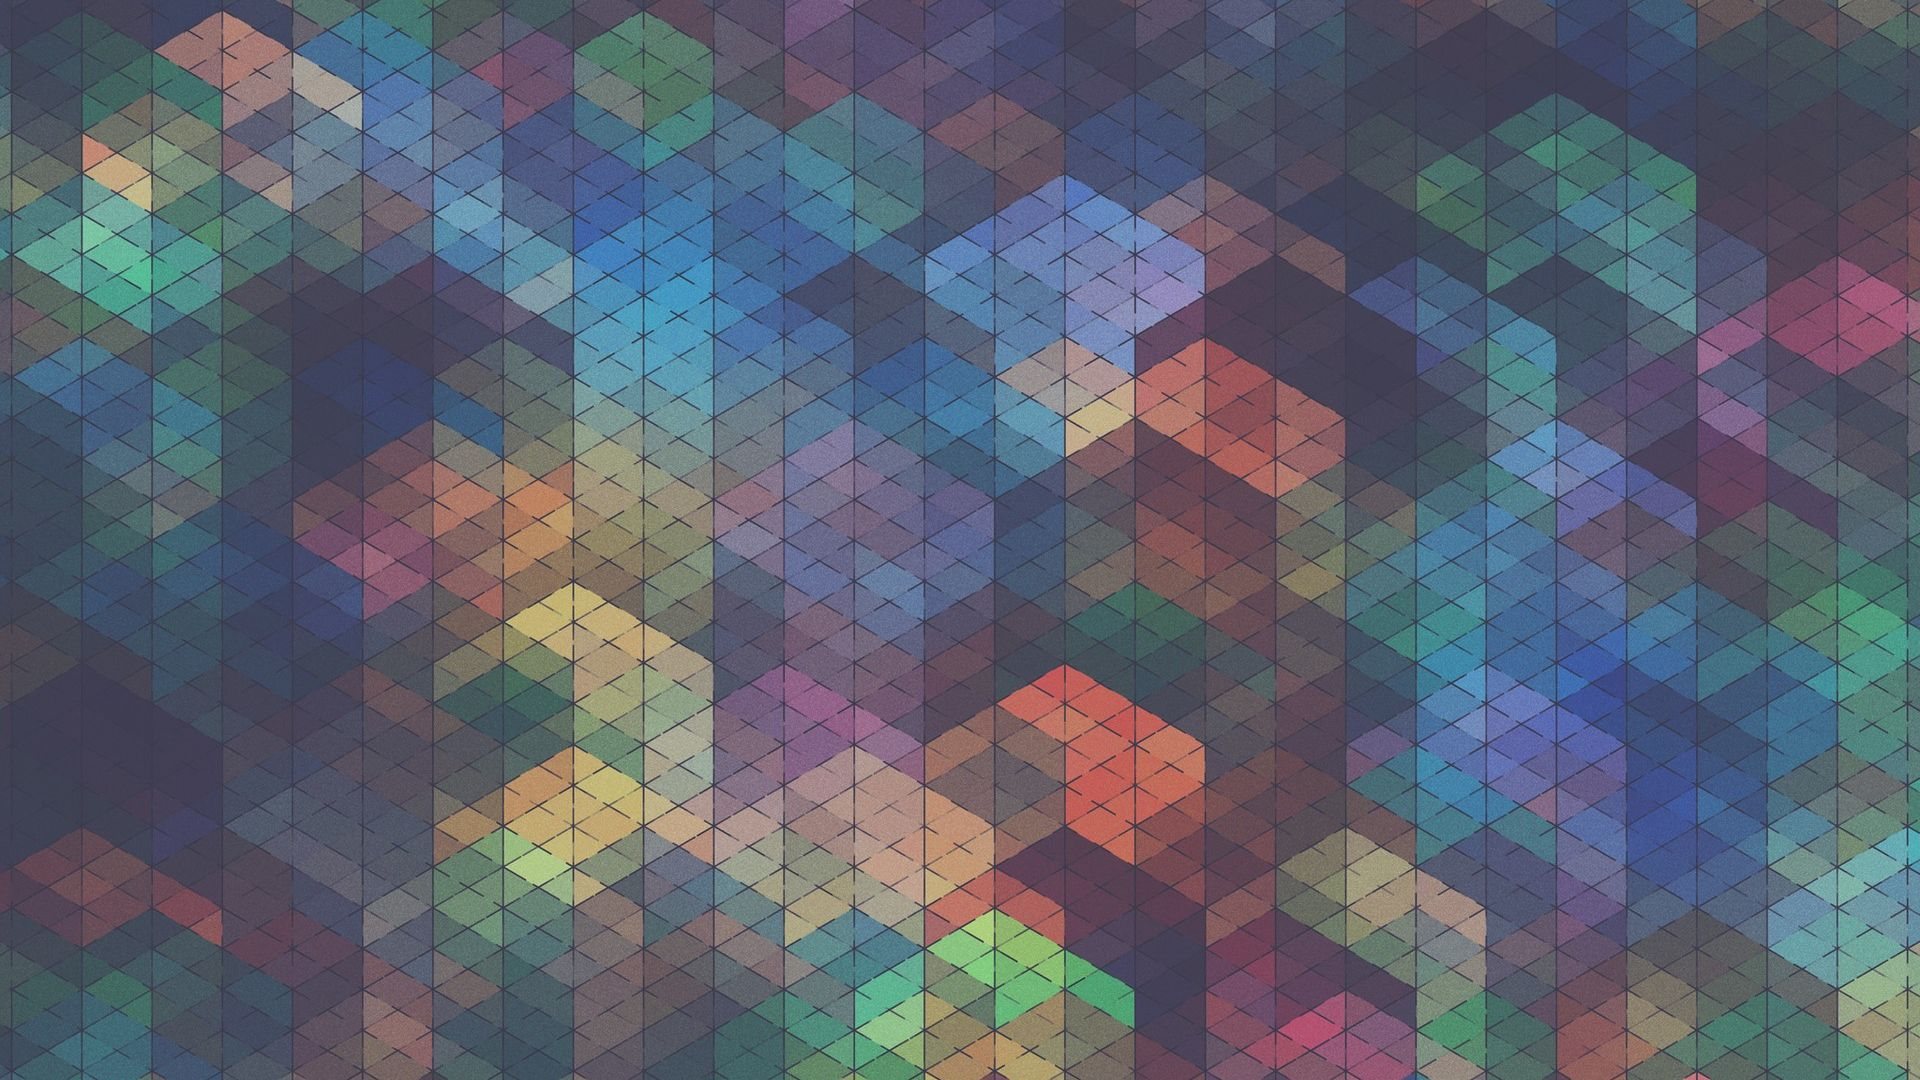 abstract-multicolor-tiles-19  fullhdwpp com